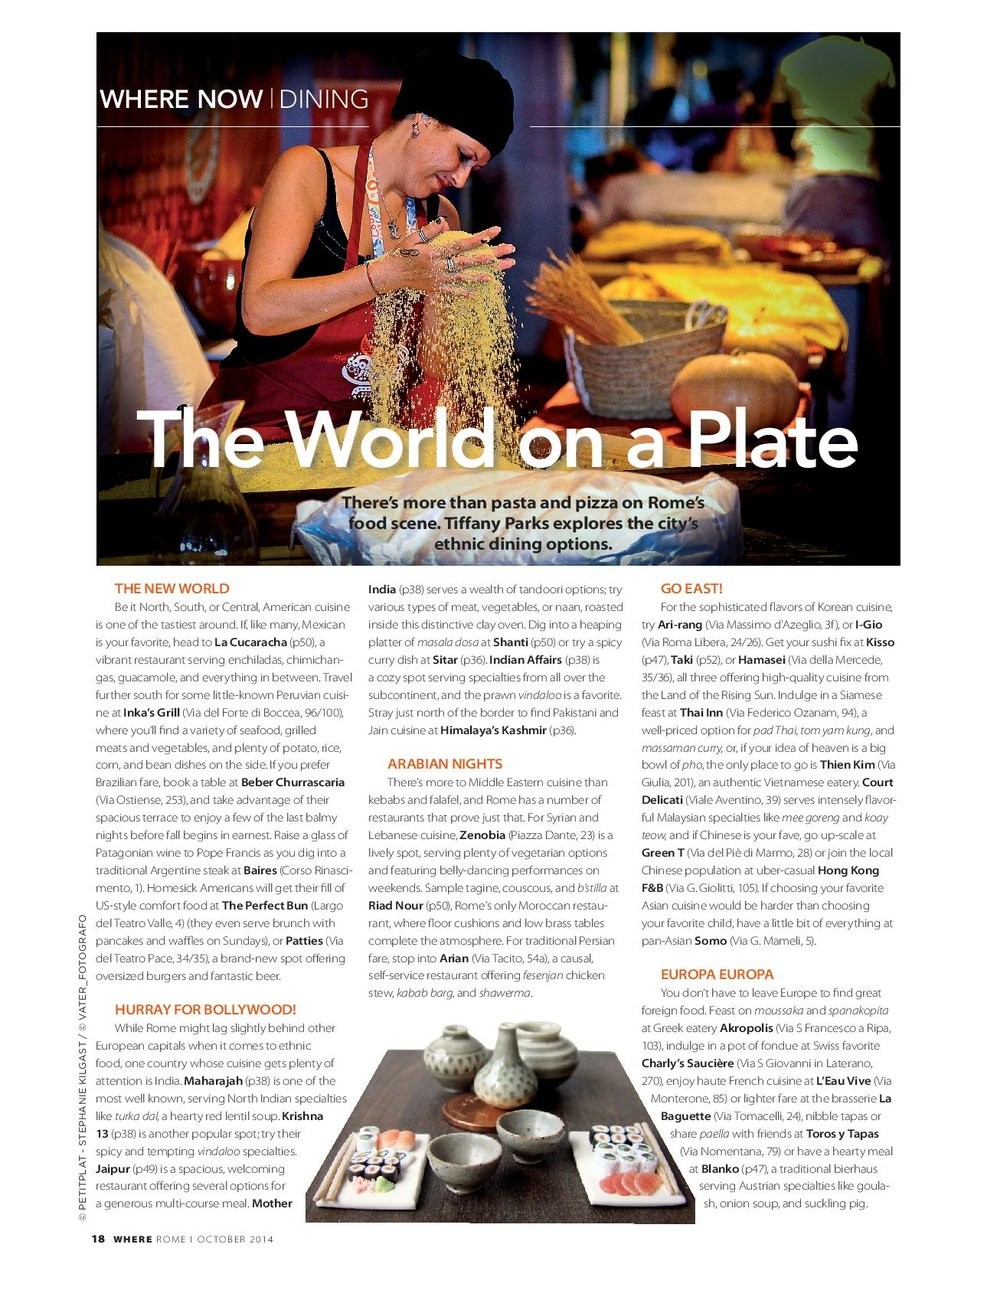 The World on a Plate, October 2014-page-001.jpg